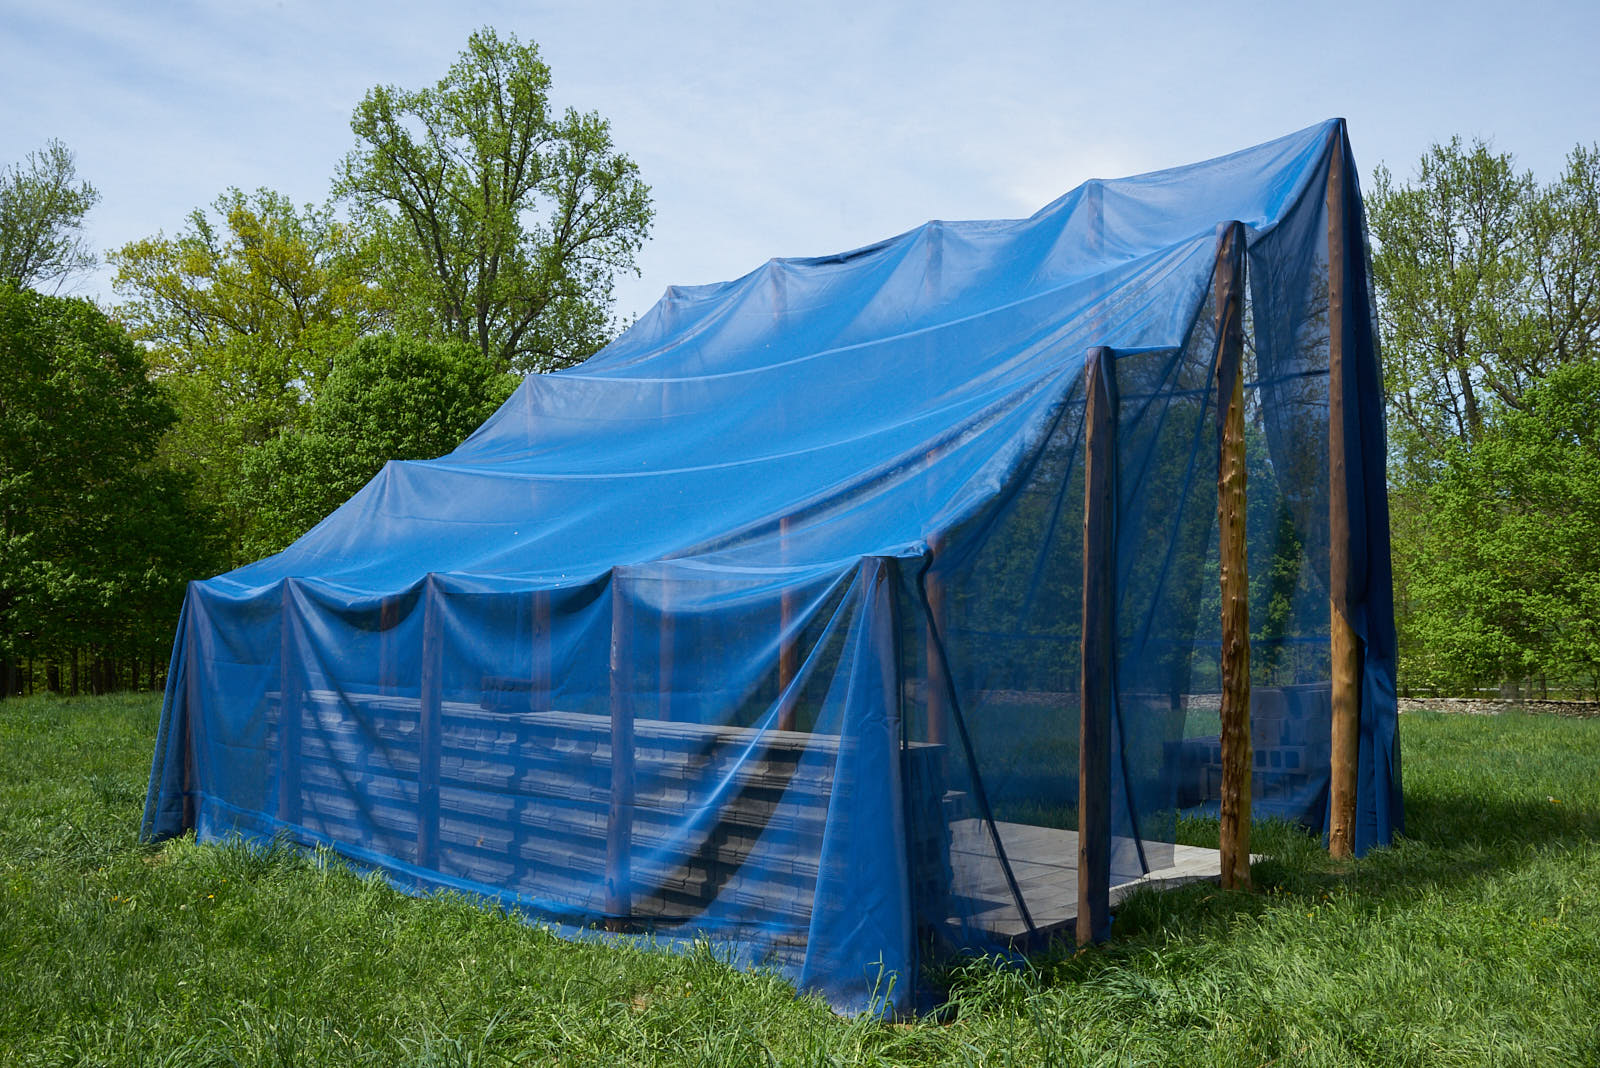 Gabriela Salazar,  Matters in Shelter (and Place, Puerto Rico) , 2018. Coffee clay (used coffee grounds, flour, salt), concrete block, wood, and polypropylene mesh tarp, 12 x 16 x 20 ft. Courtesy of the artist. Photo:Jerry L. Thompson.